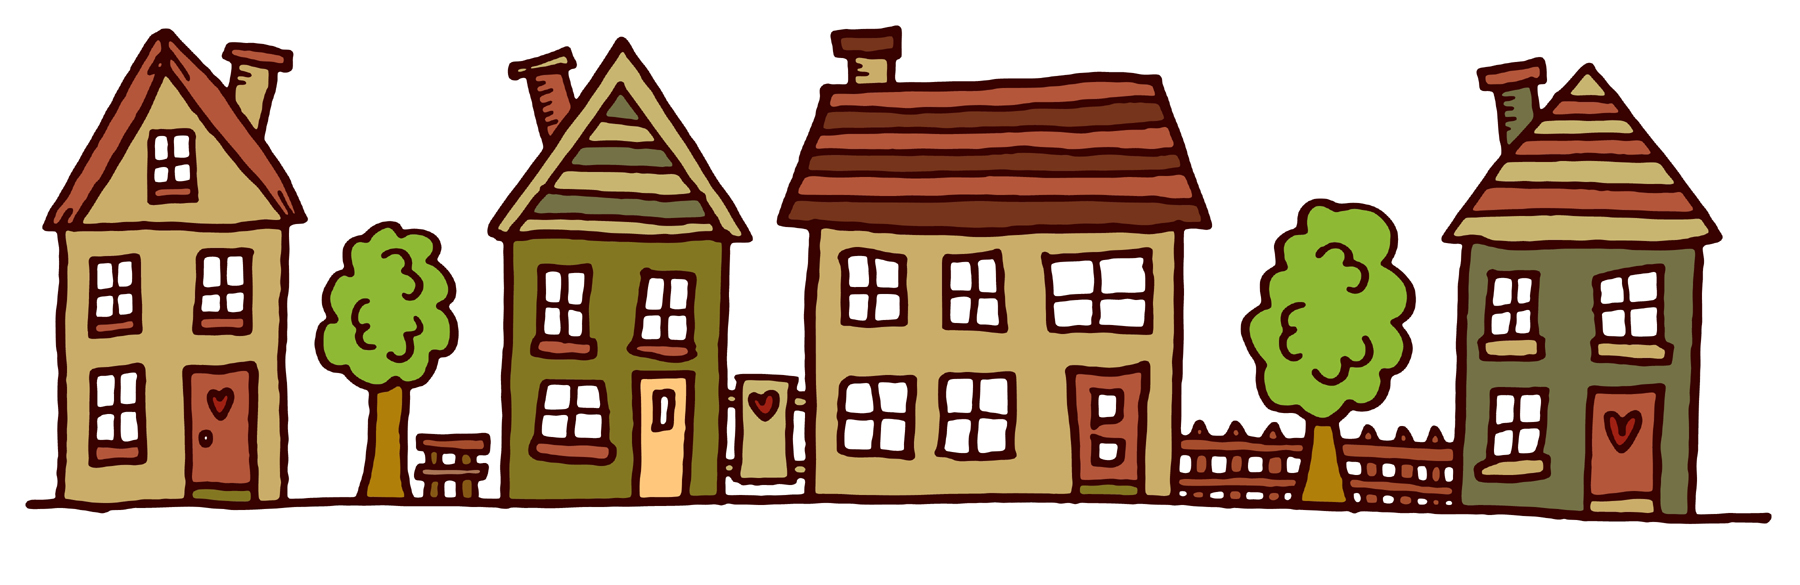 Comprised clipart house.